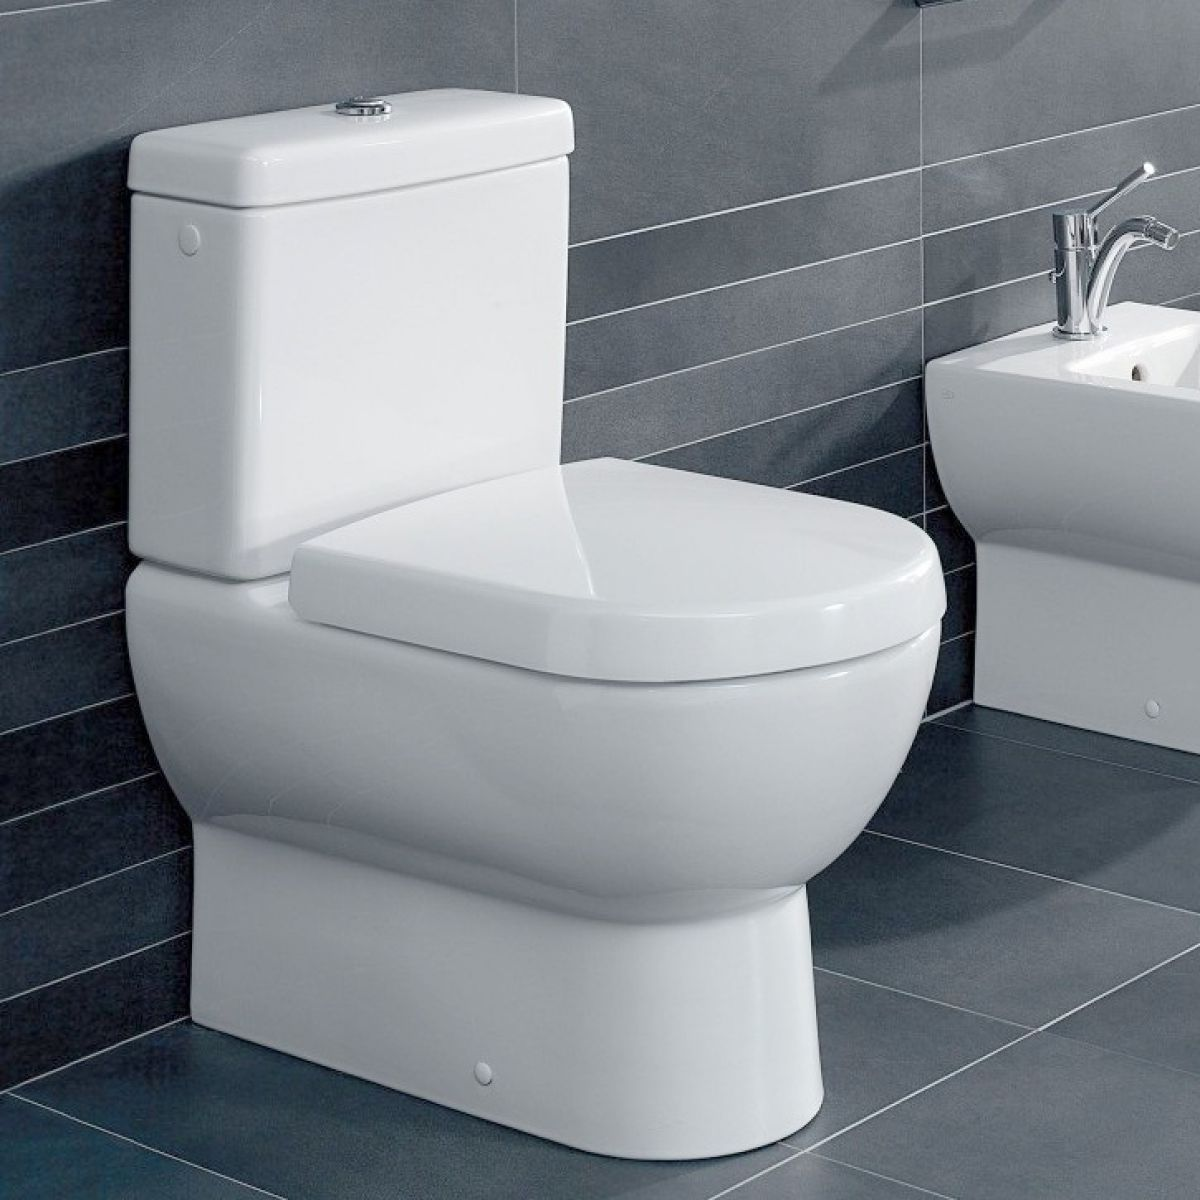 Wet Room Wall Panels >> Villeroy & Boch Subway Close Coupled Toilet : UK Bathrooms